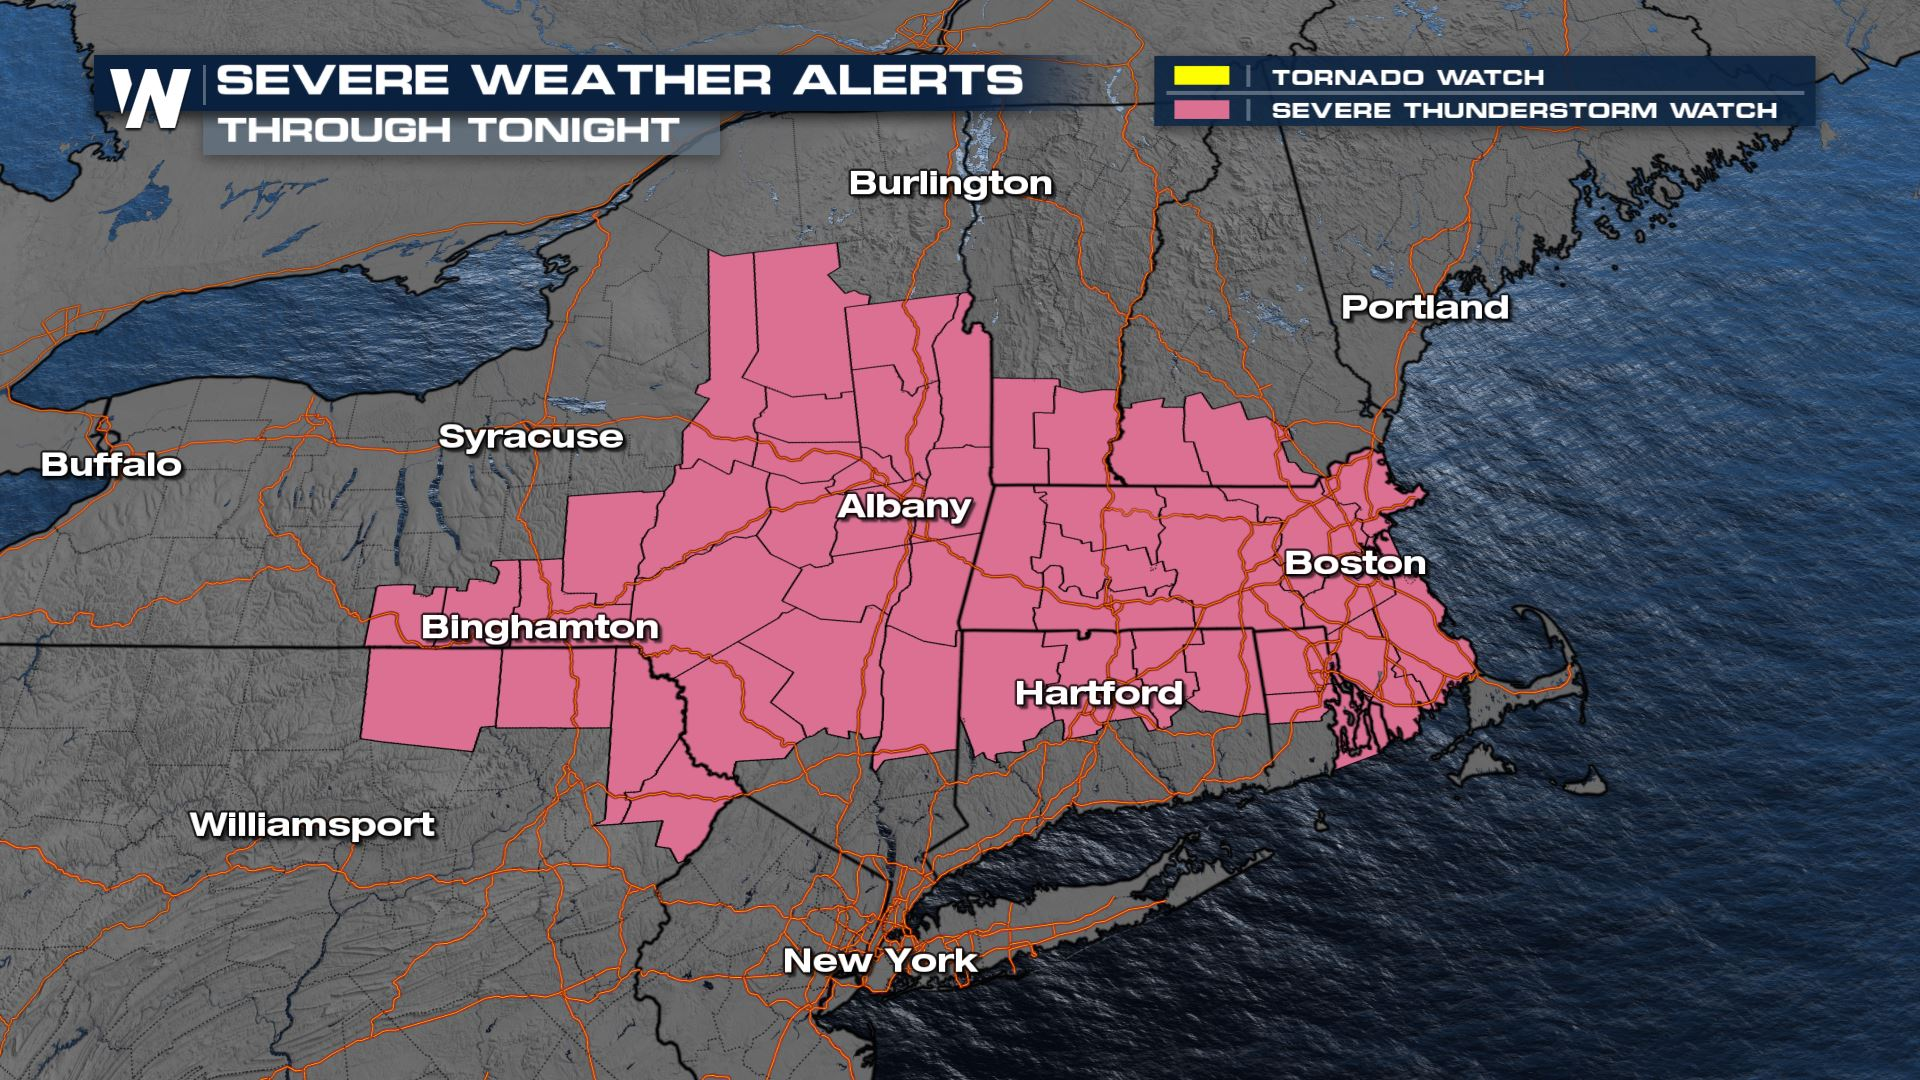 Damaging Wind Threat for Parts of the Northeast